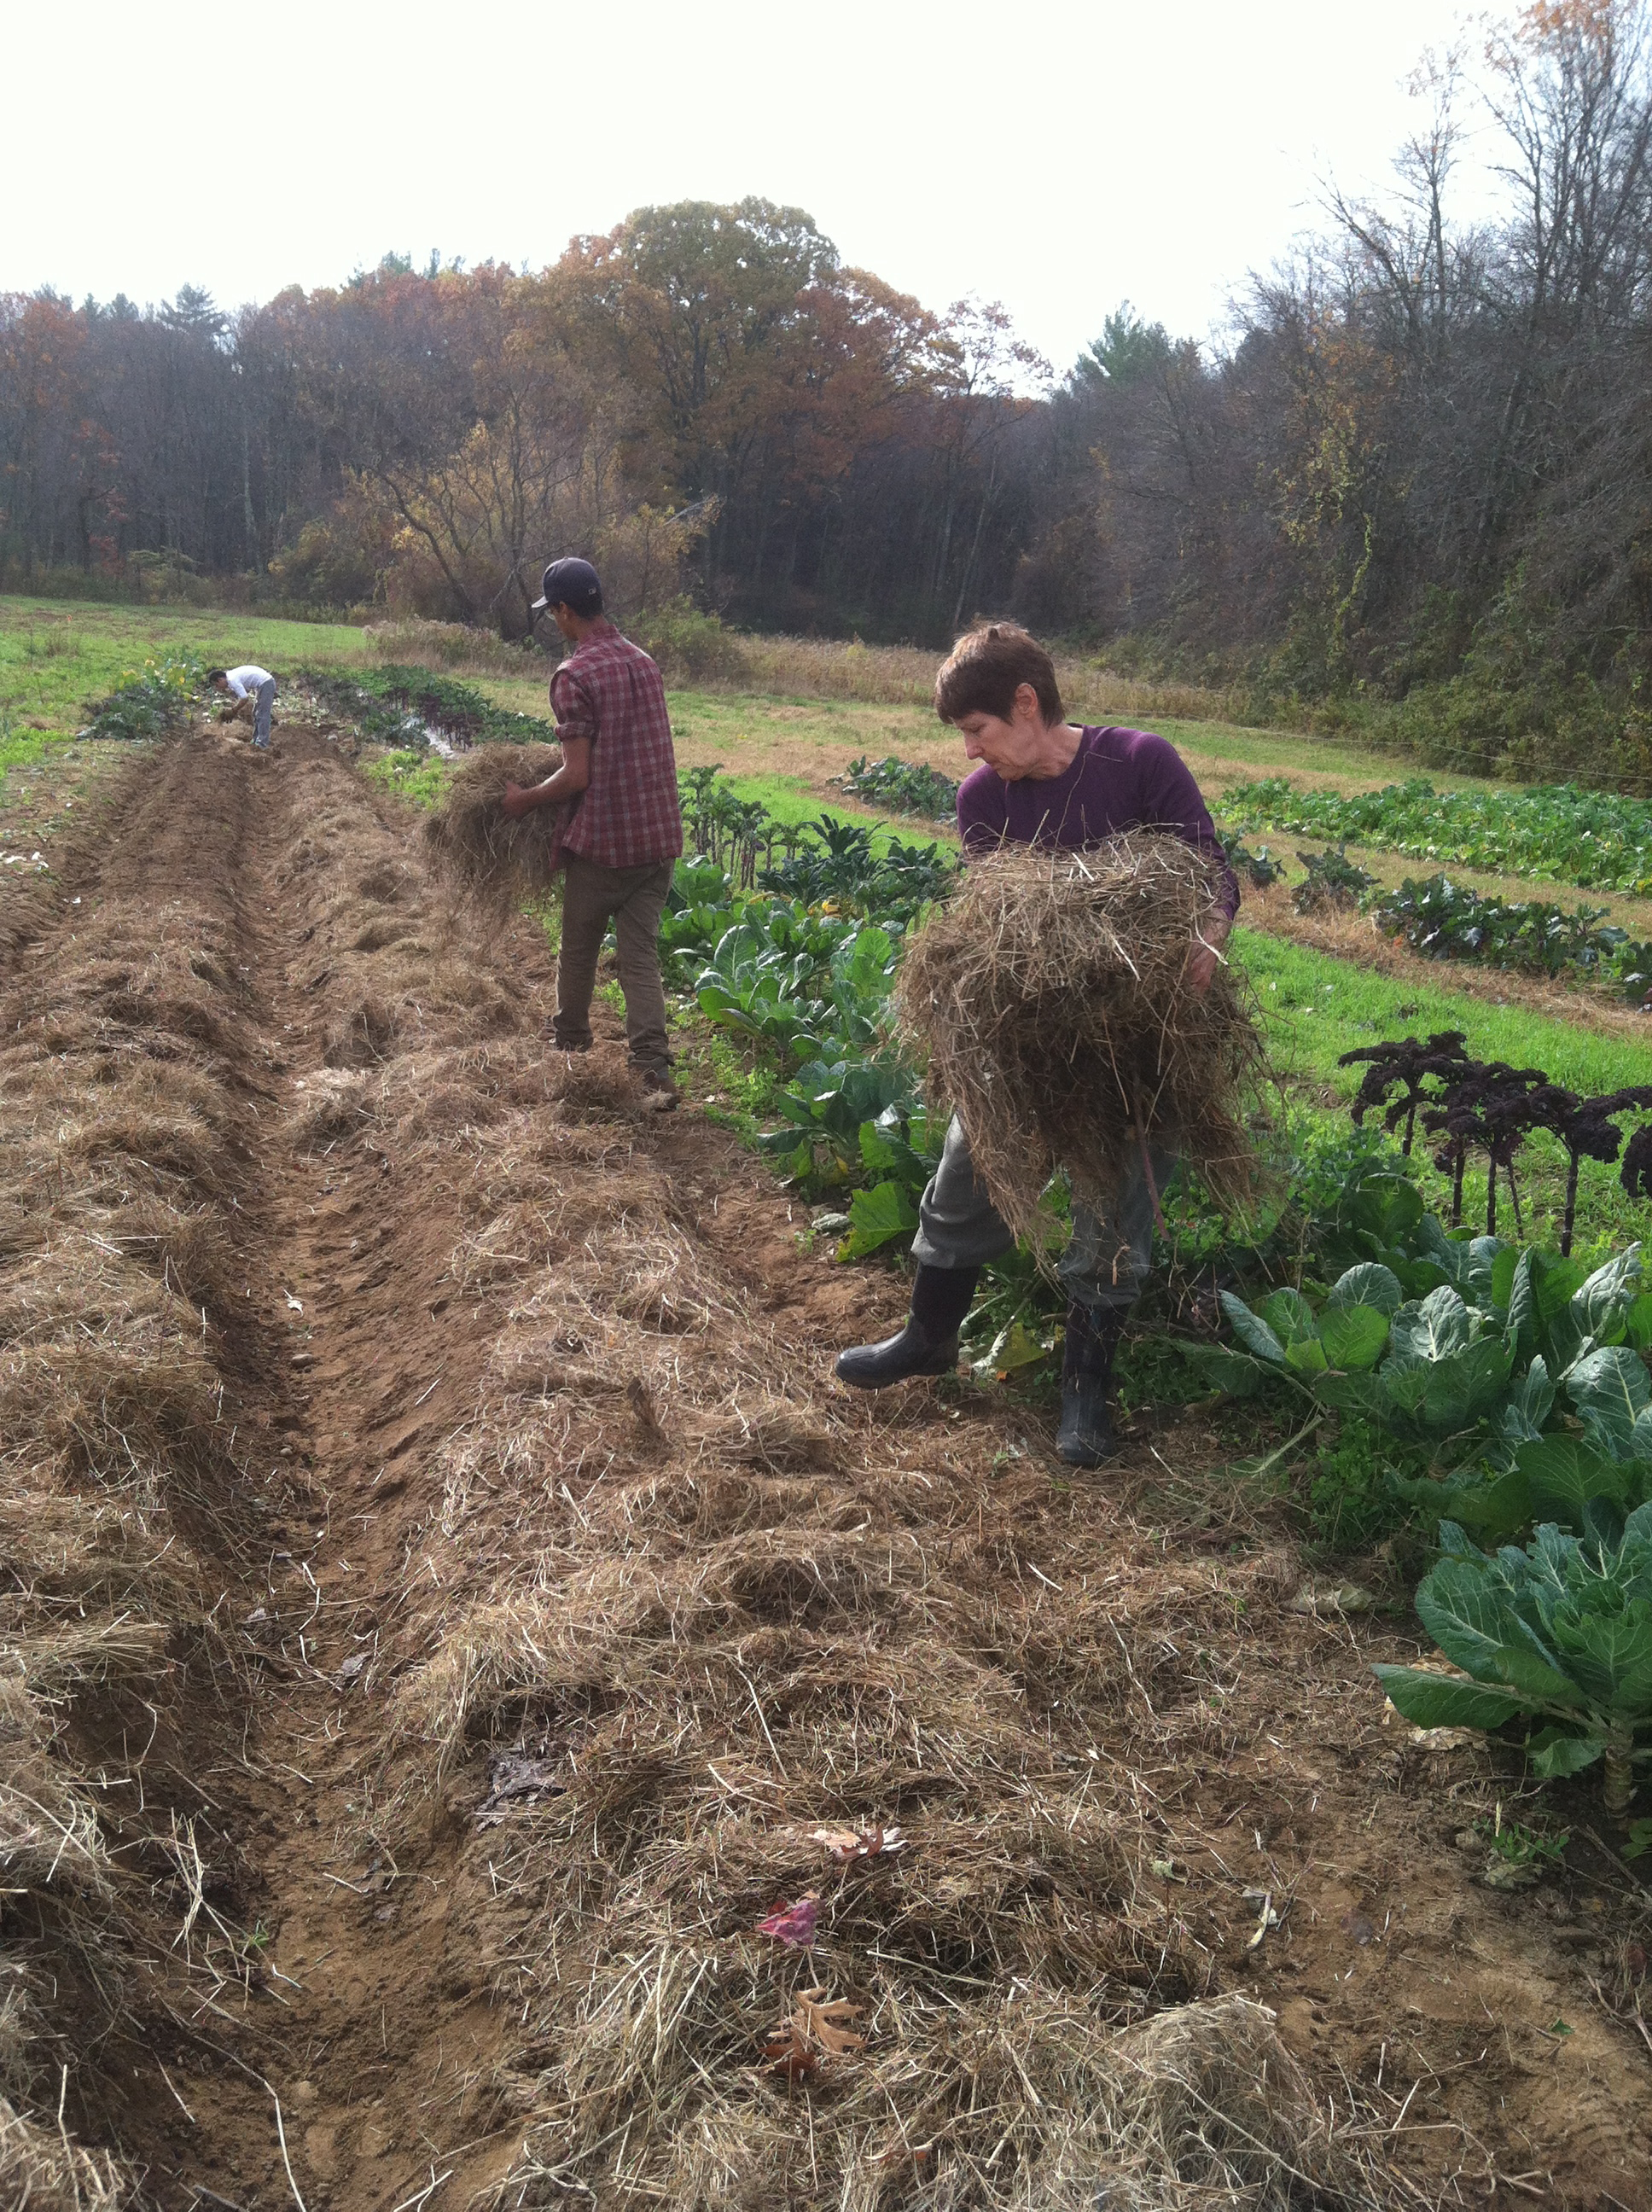 Covering garlic beds with hay